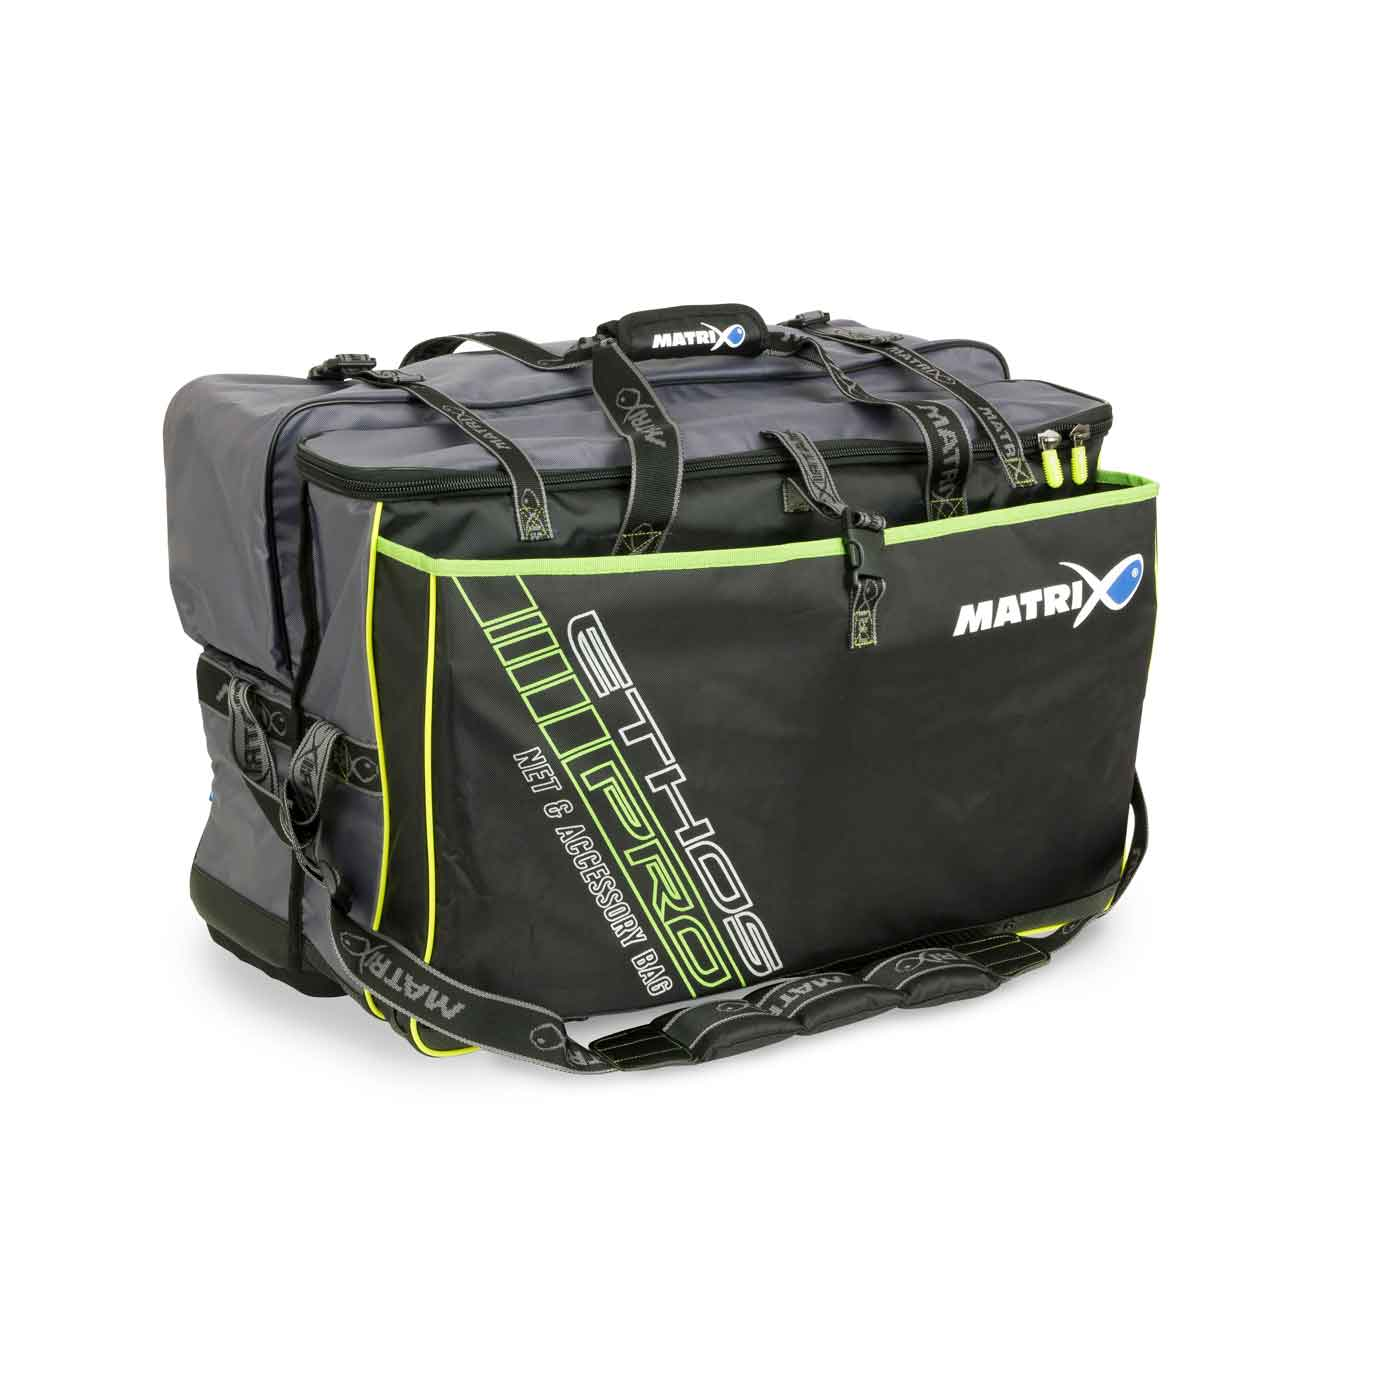 Matrix Ethos Pro Bait Net and Accessory Bag